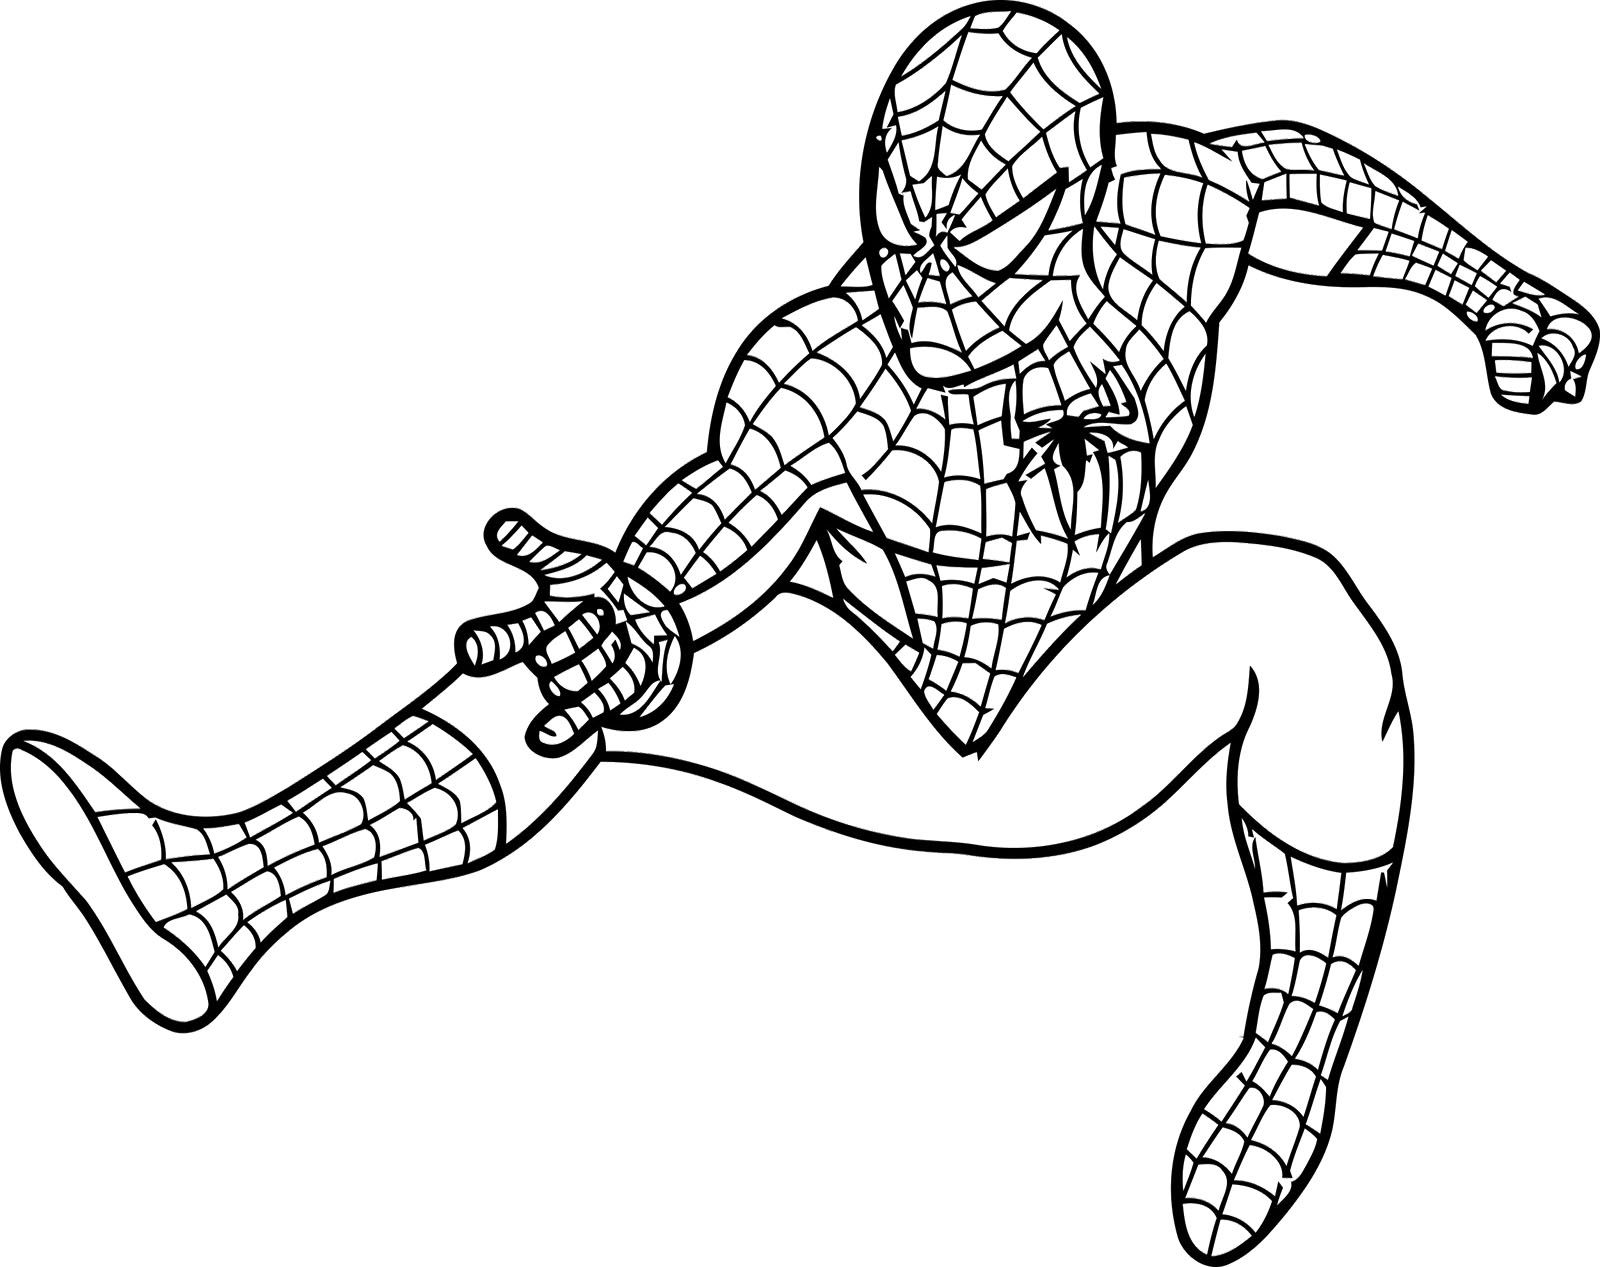 coloring pages of spiderman # 3